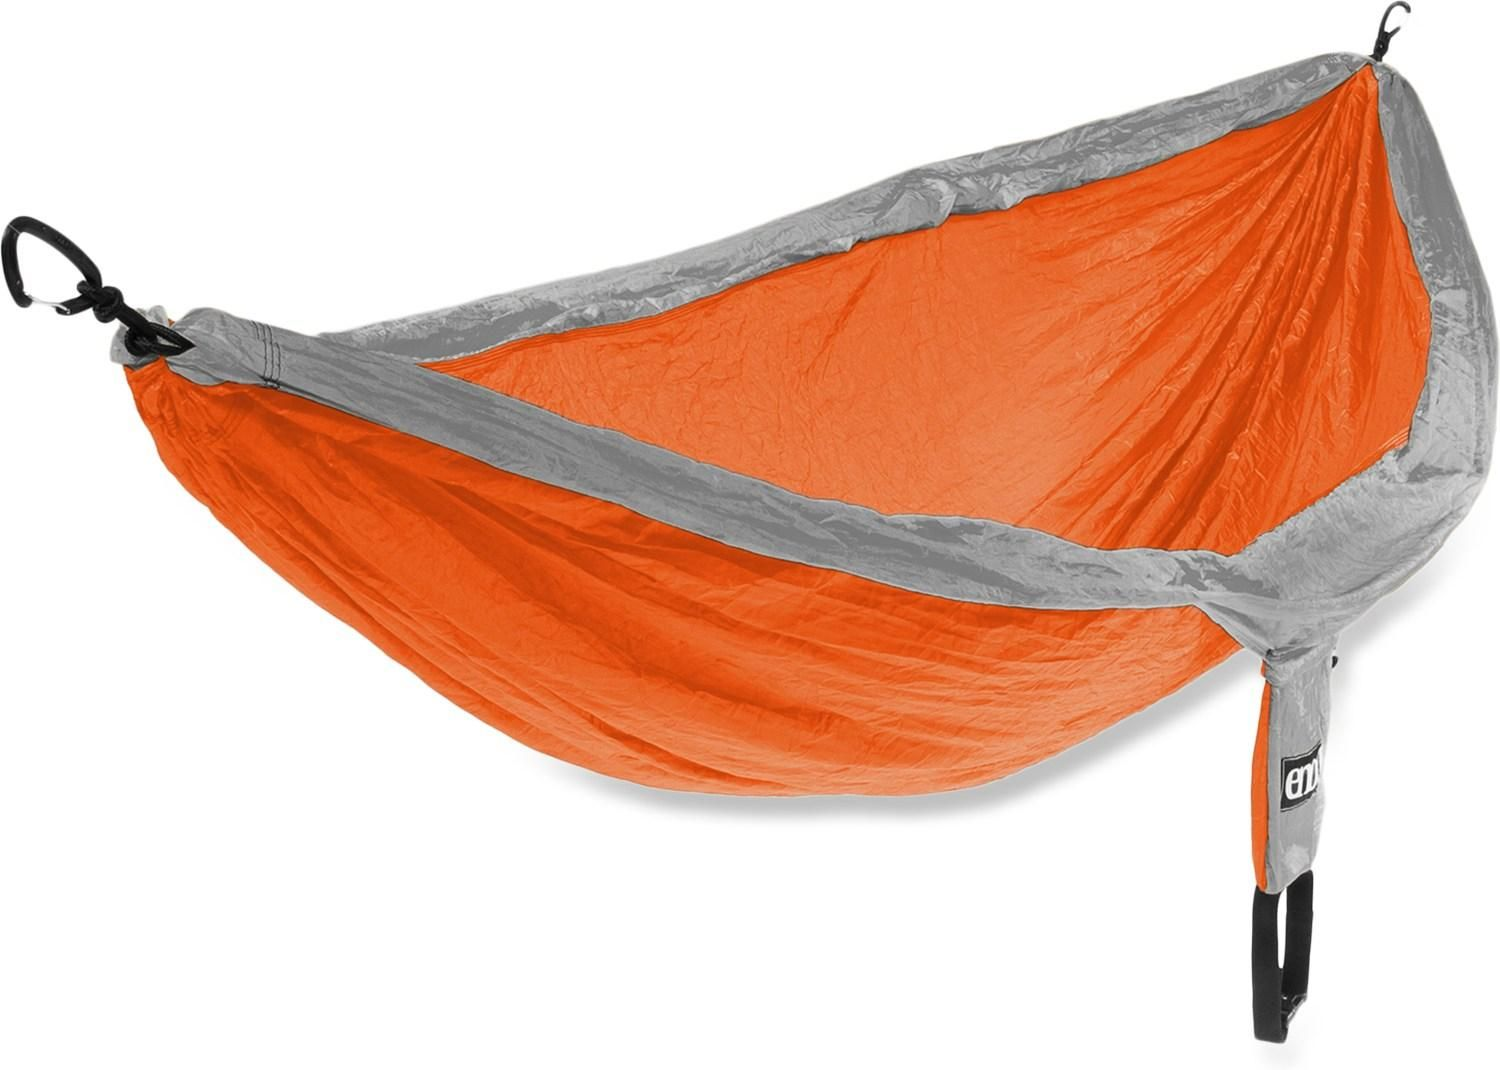 With Room For 2 The Eno Doublenest Hammock Is Great For